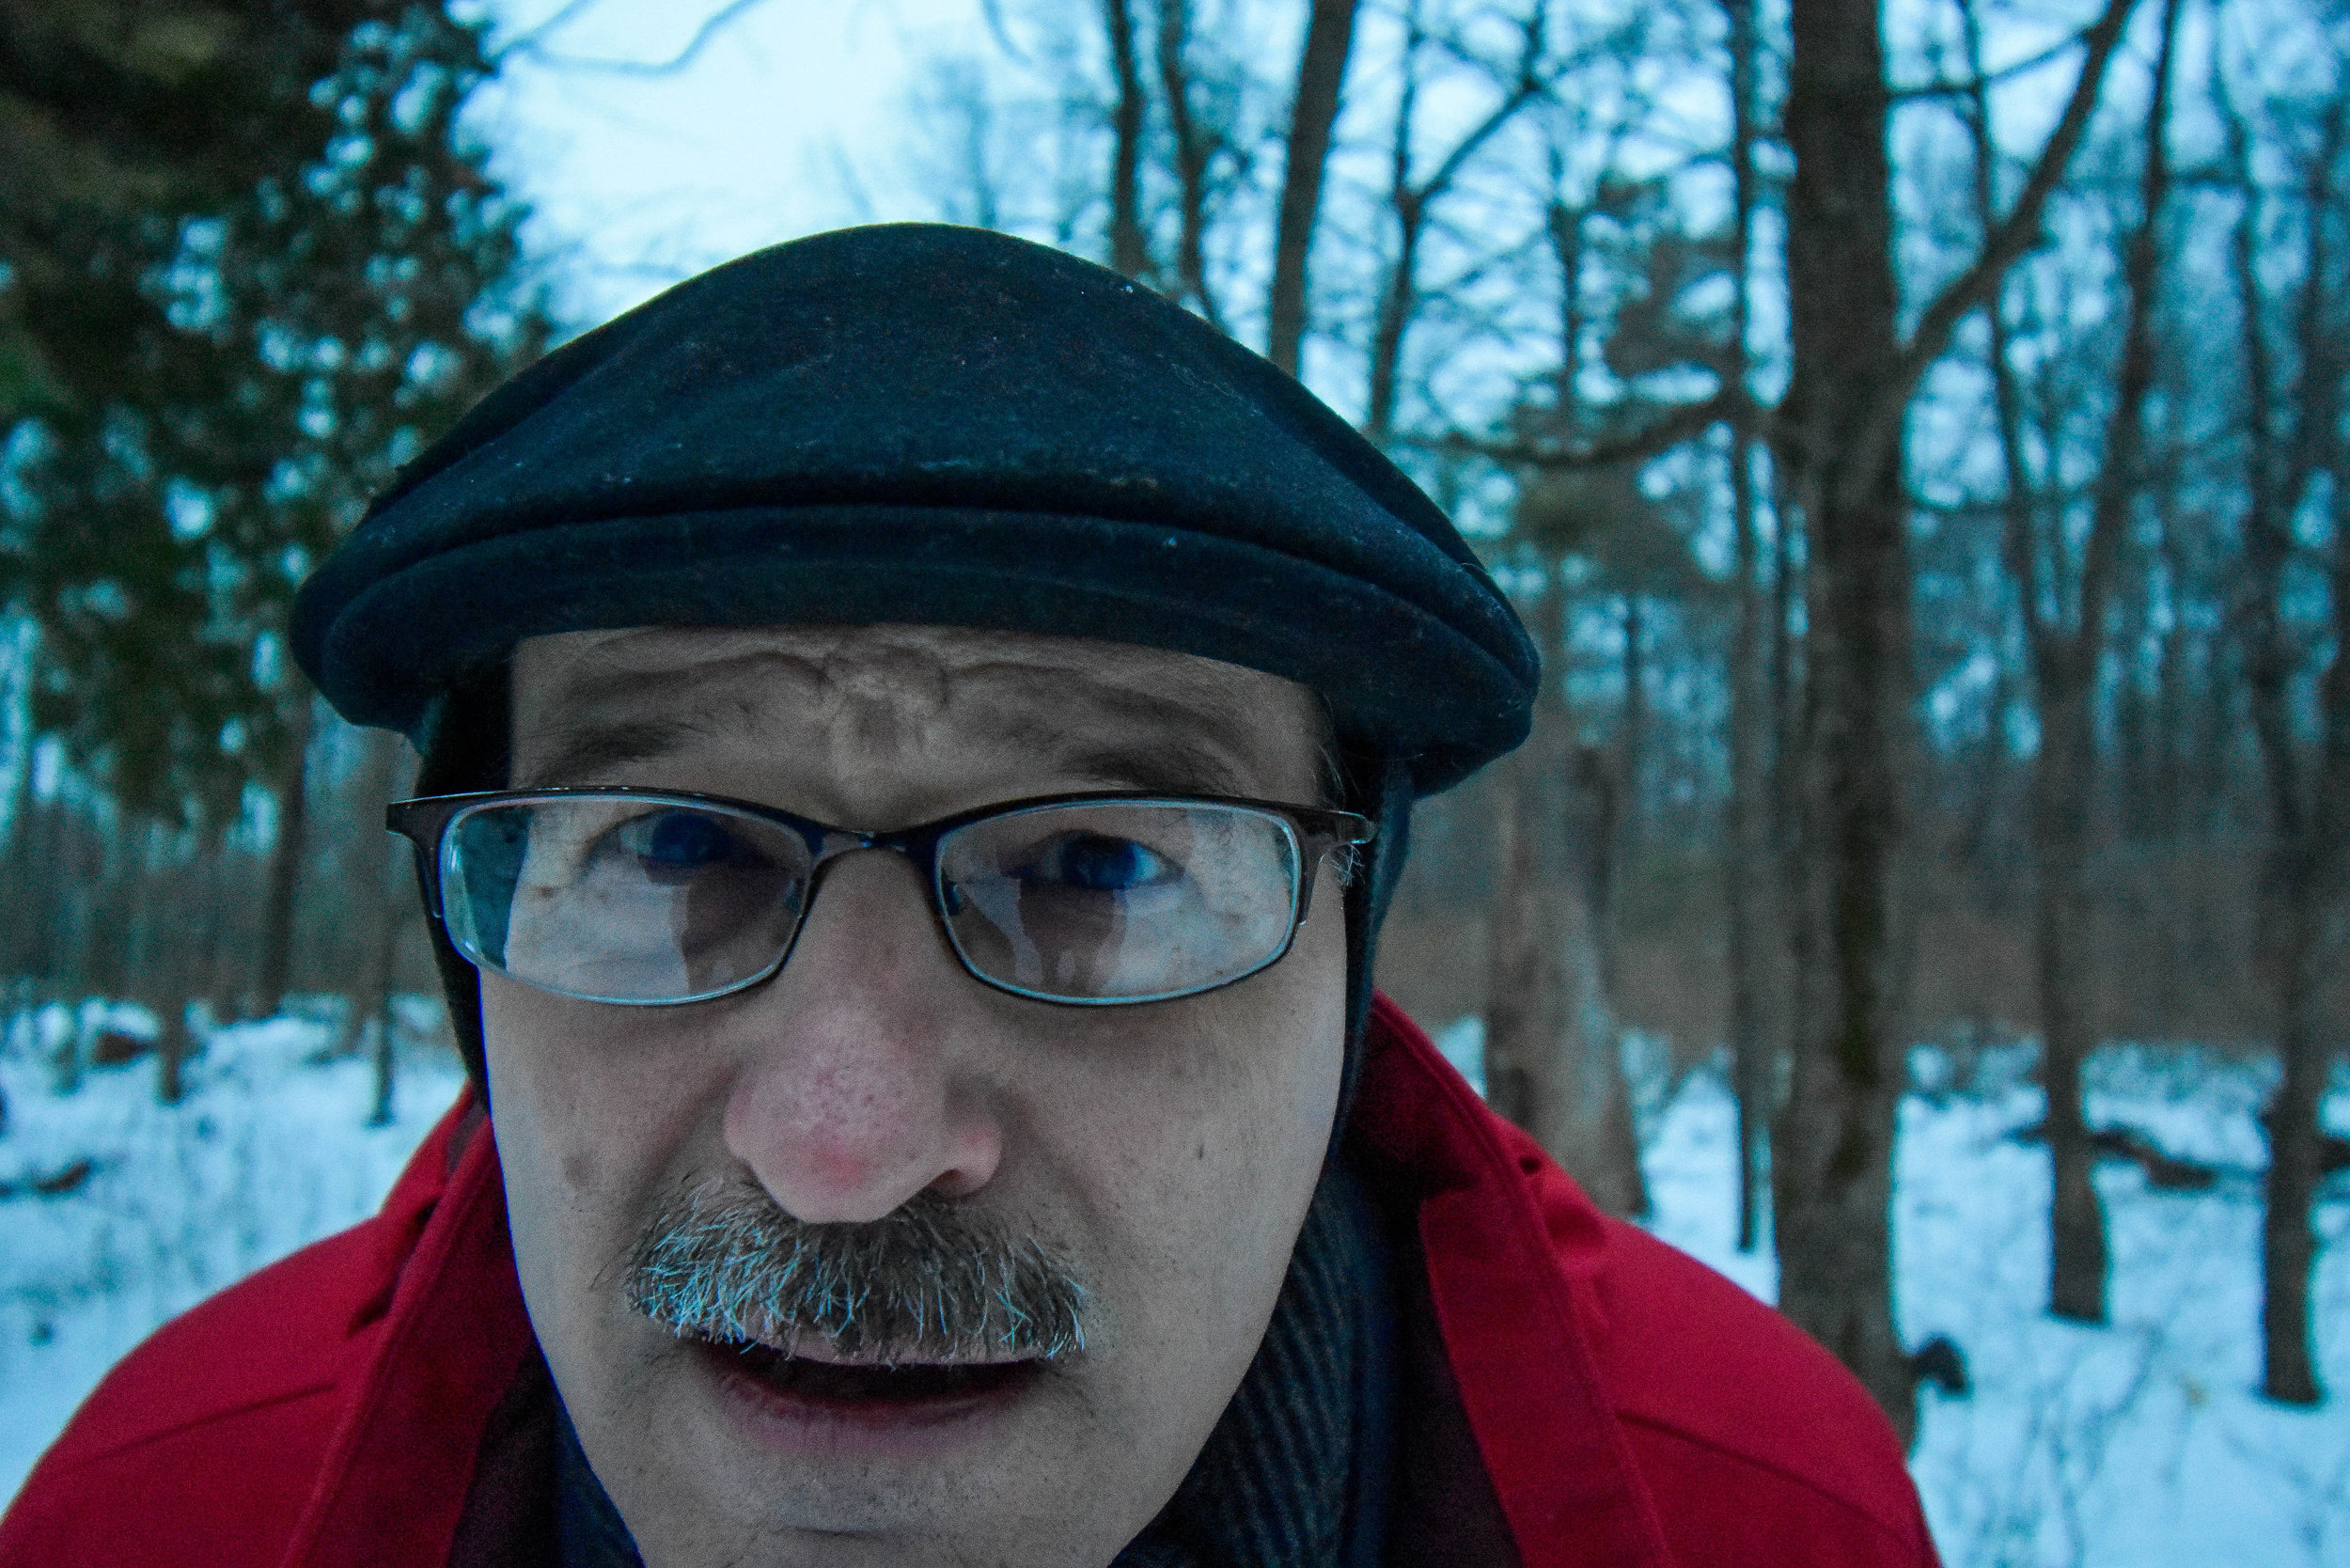 During a family hike, my father stops to check my lens for debris, caught off guard when I decided to photograph him.